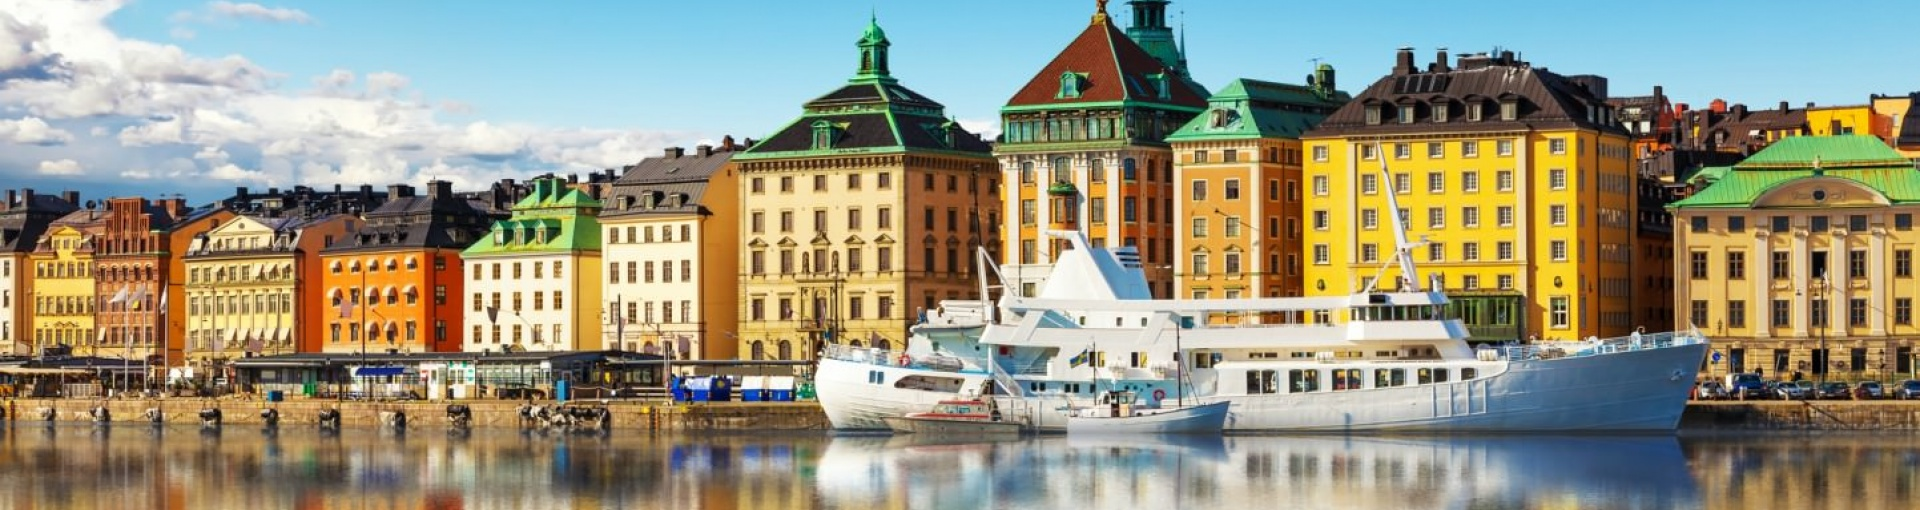 Travel Packages From Copenhagen To Oslo